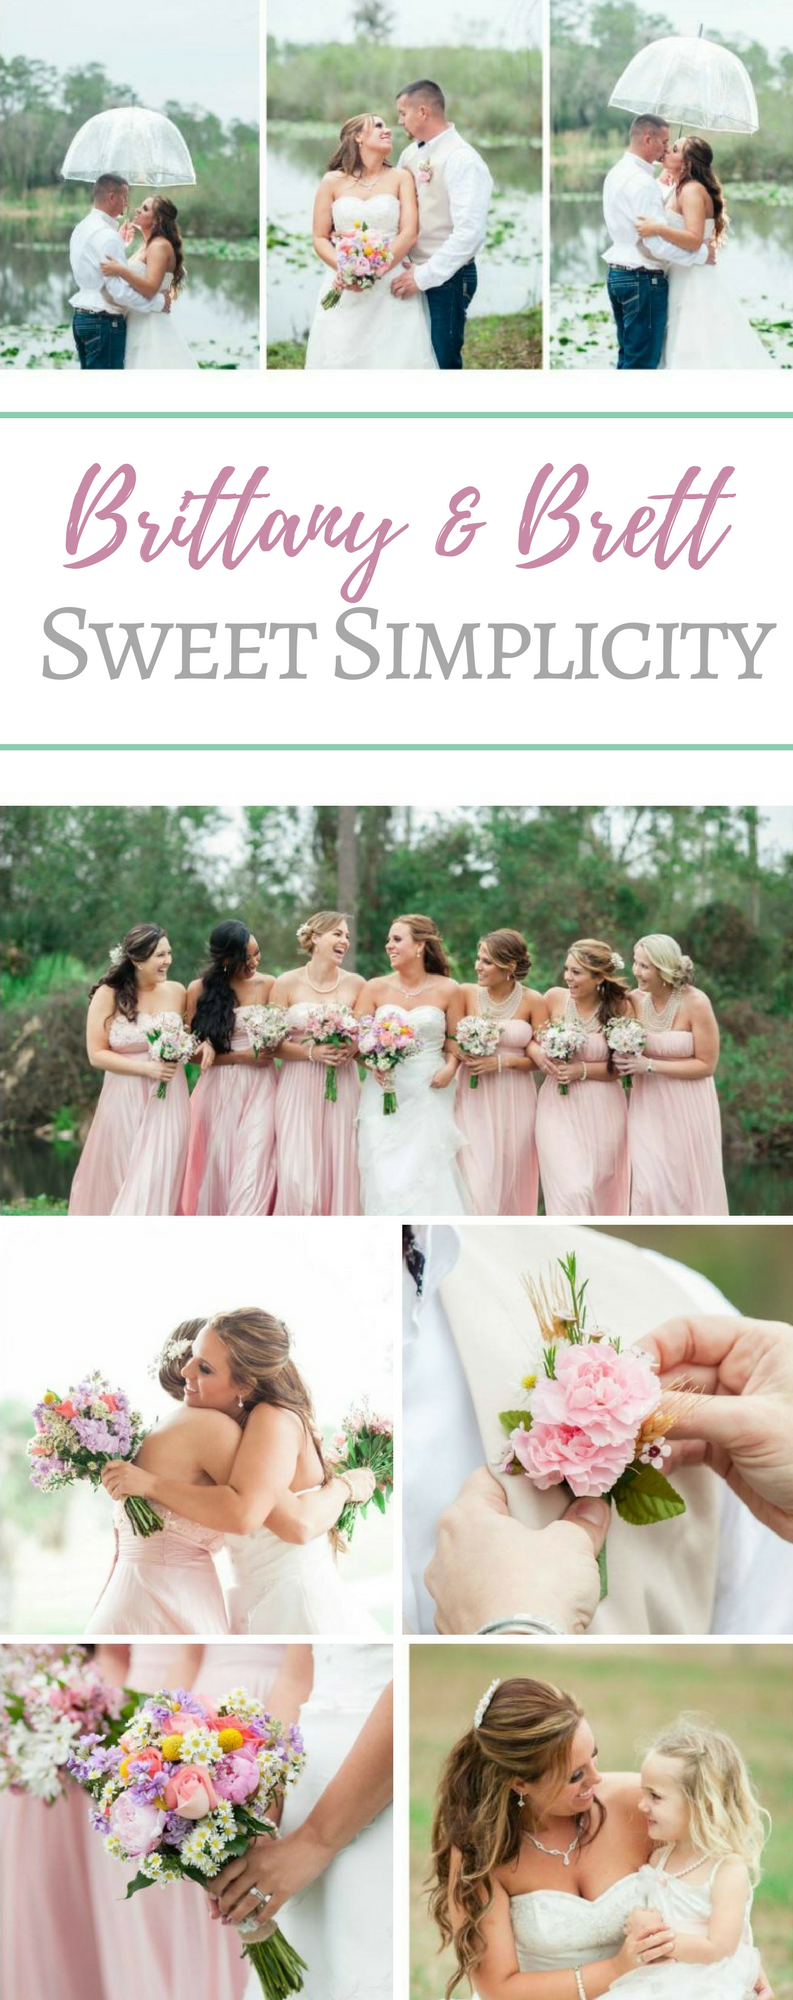 Brittany & Brett - Sweet Simplicity | Blush pink, Weddings and ...